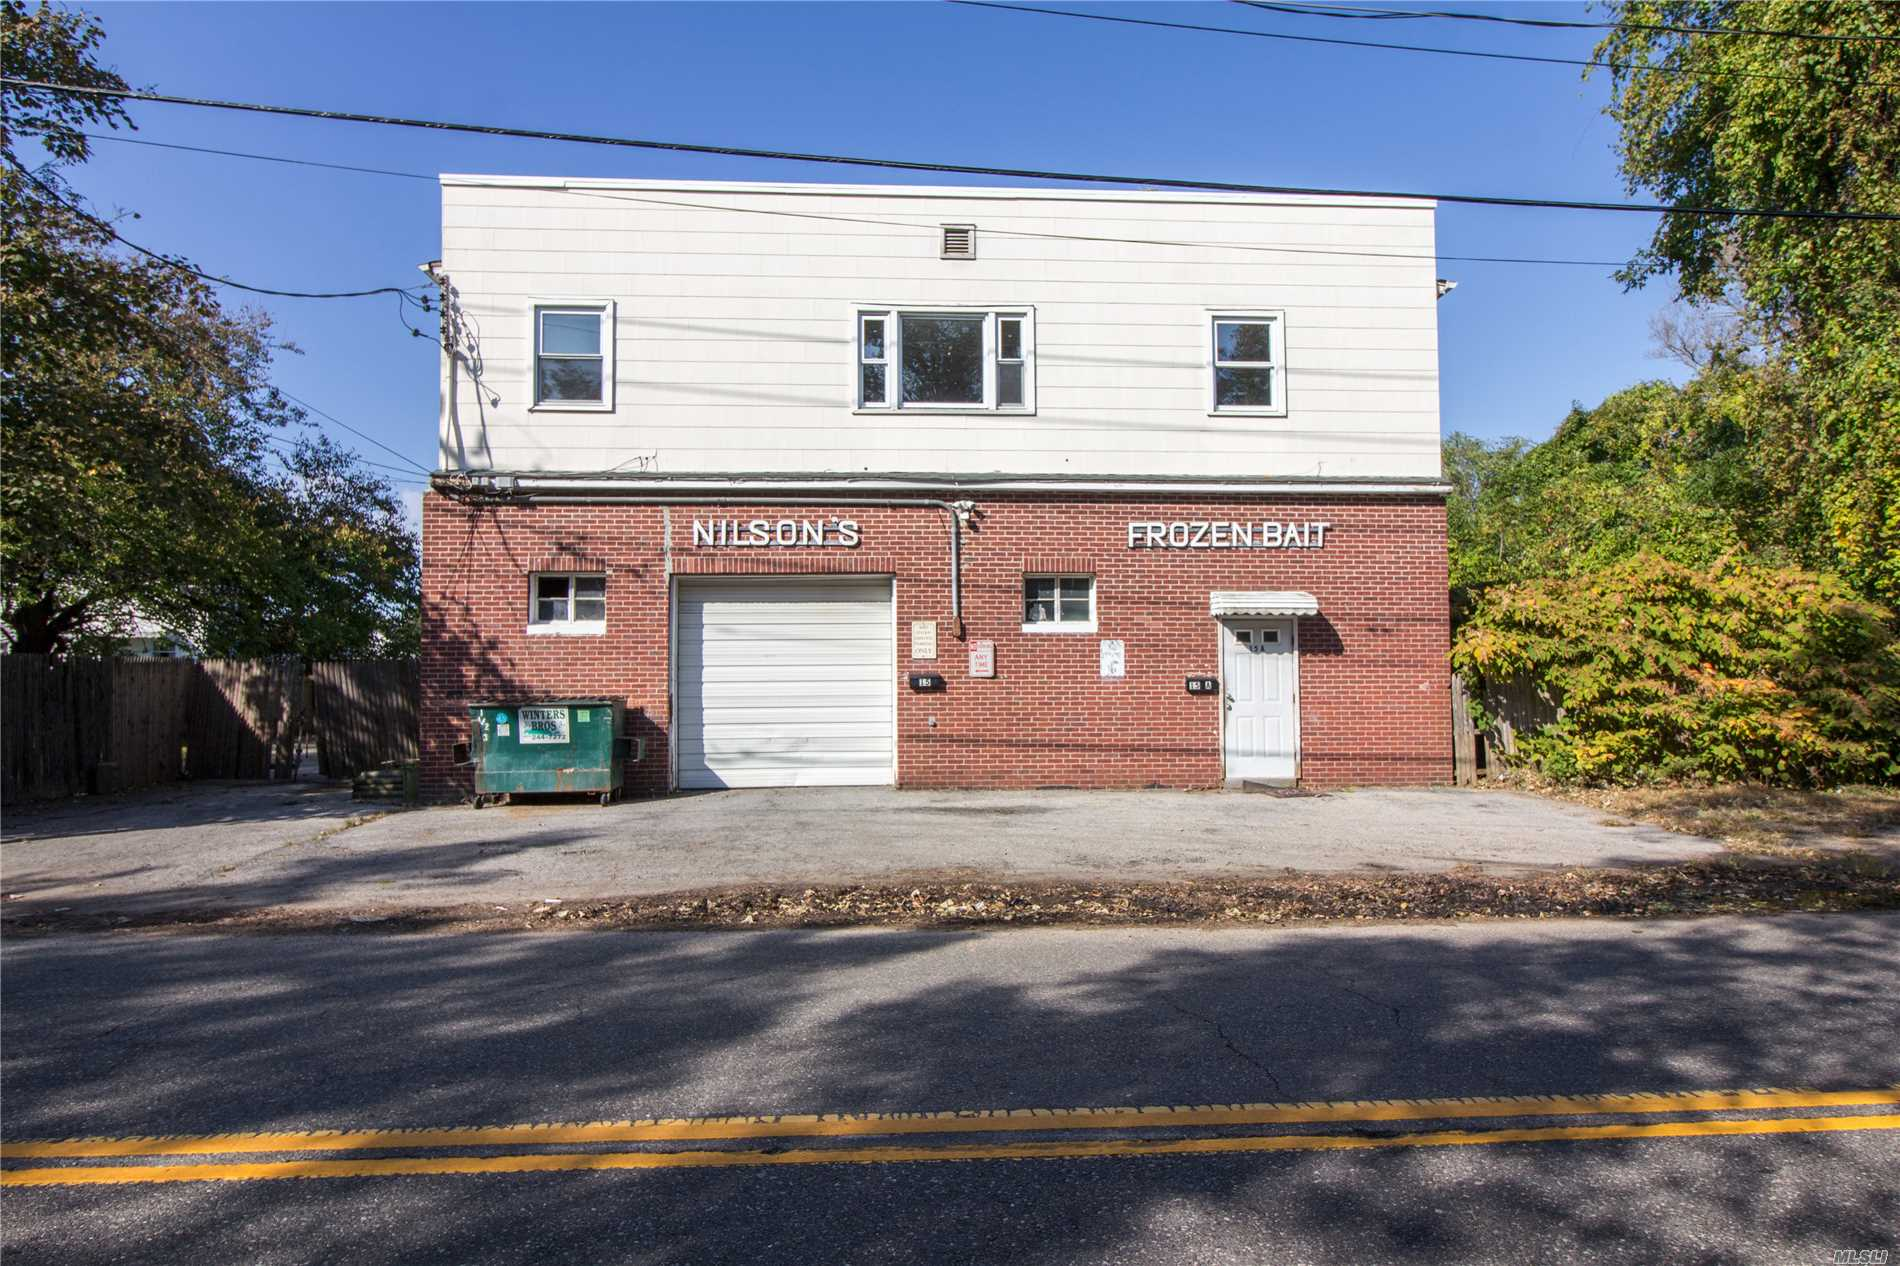 Mixed Use Property With Income Potential! Approx. 3000 Sq. Ft. Of Business Use On The Ground Level With 3 Large Walk-In Freezers, An 8'9 Garage Door As Well As Office And Bathroom On The First Floor And A Fenced-In Yard. The Second Floor Consists Of A 1, 320 +/- Sq. Ft., 3 Br Rental Apt.